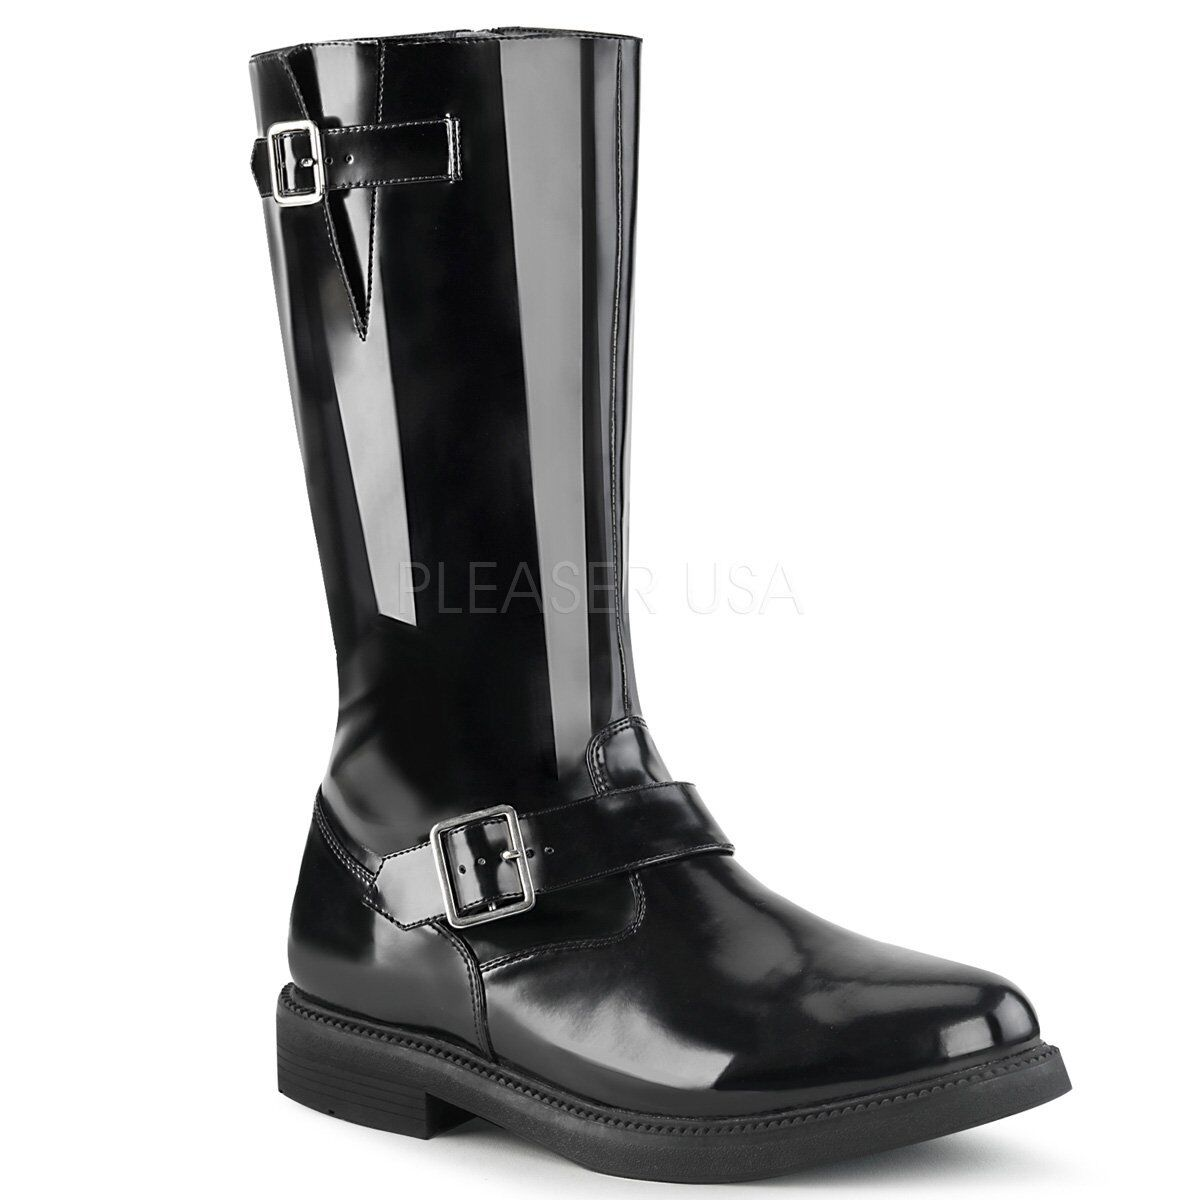 Star Wars Imperial Officer Darh Vader Military Steampunk Gothic Knee High Stiefel